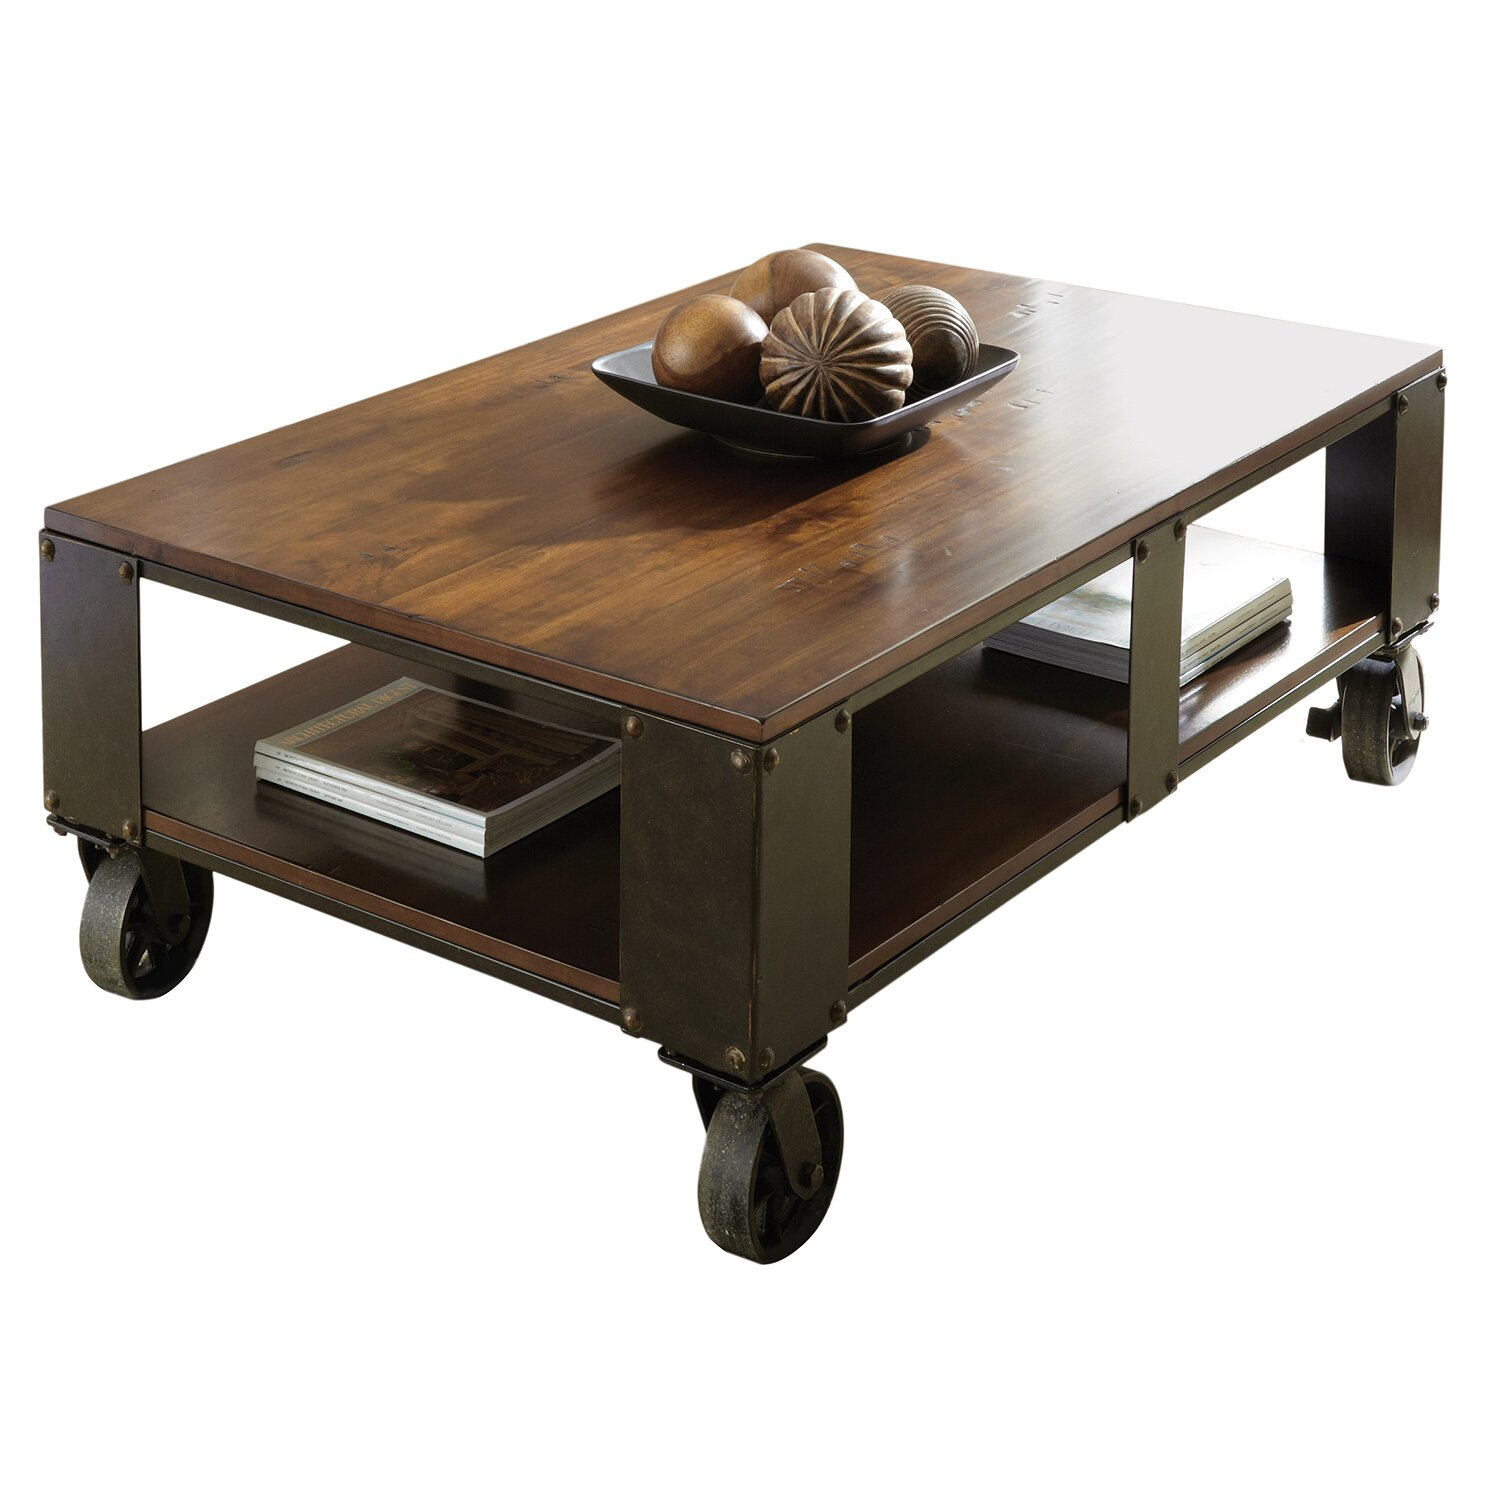 Trent austin design coffee table reviews wayfair supply for Wayfair industrial coffee table